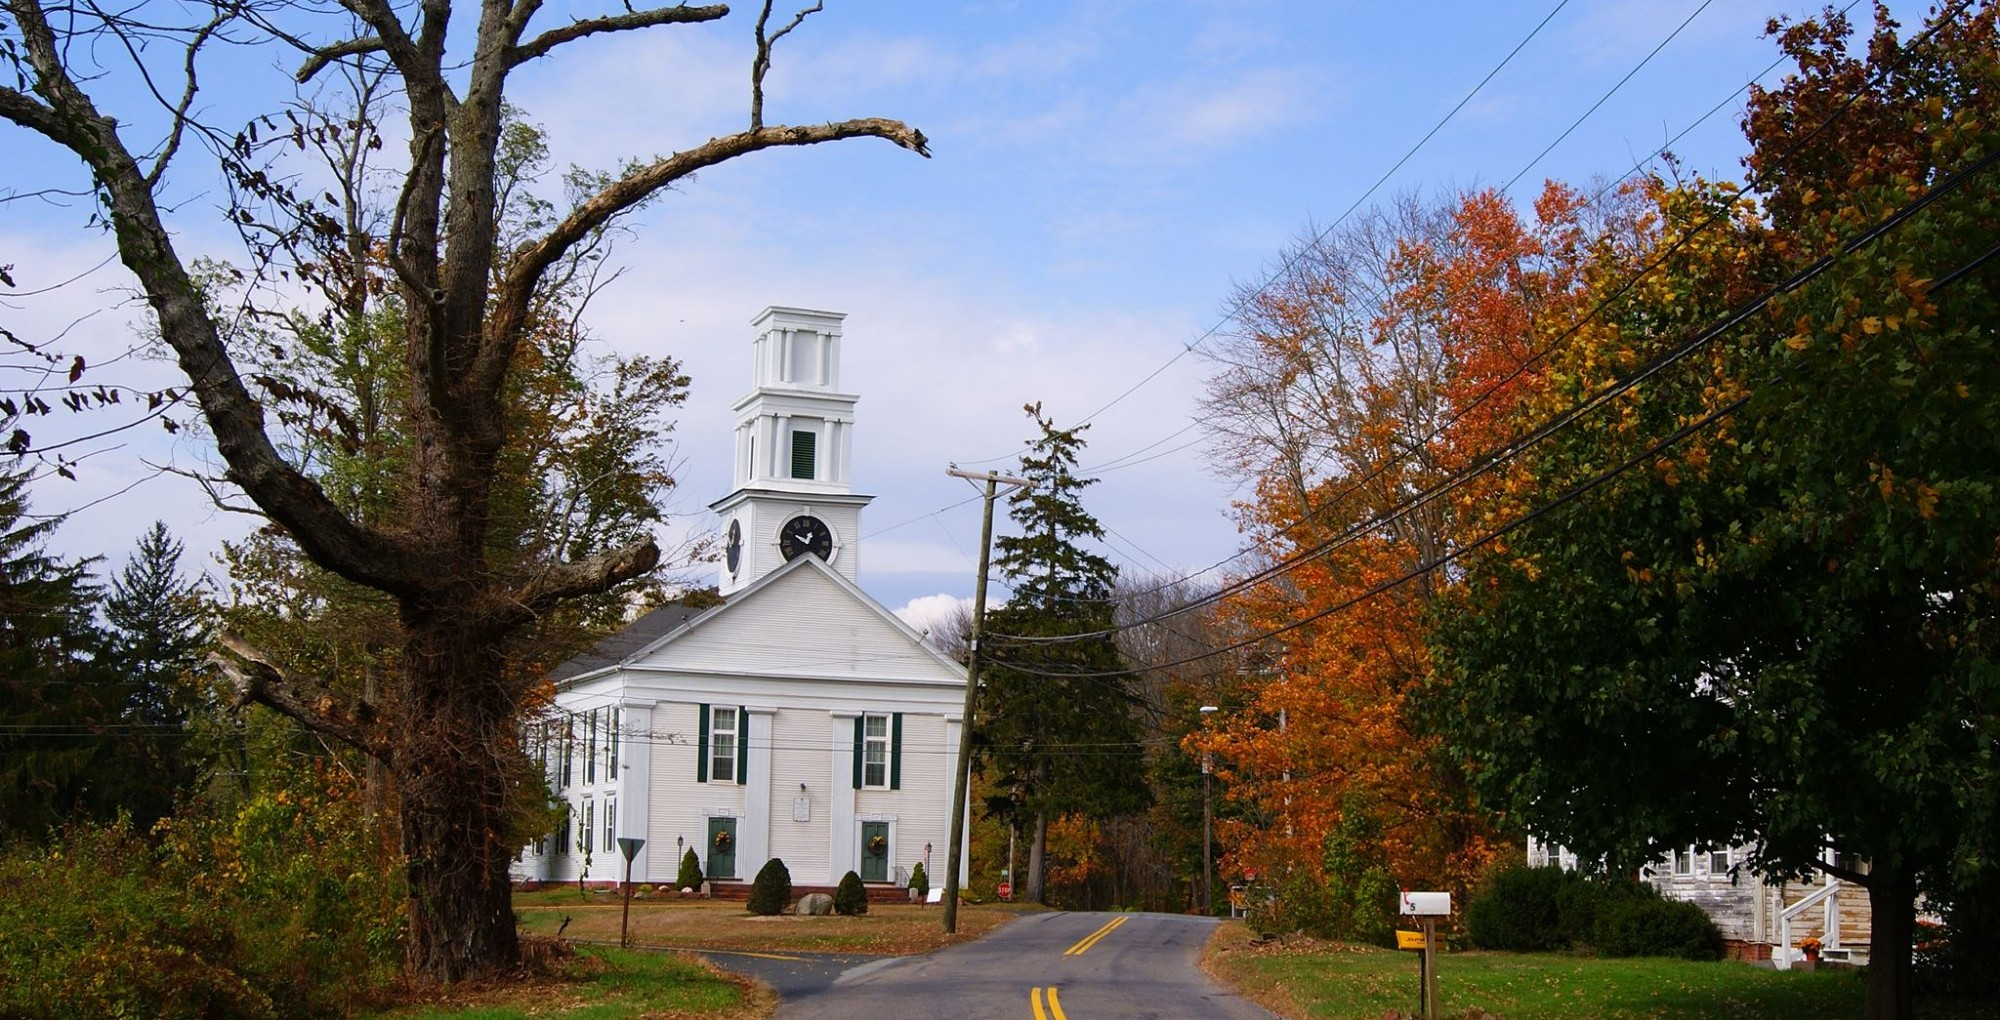 First Congregational Church of East Windsor